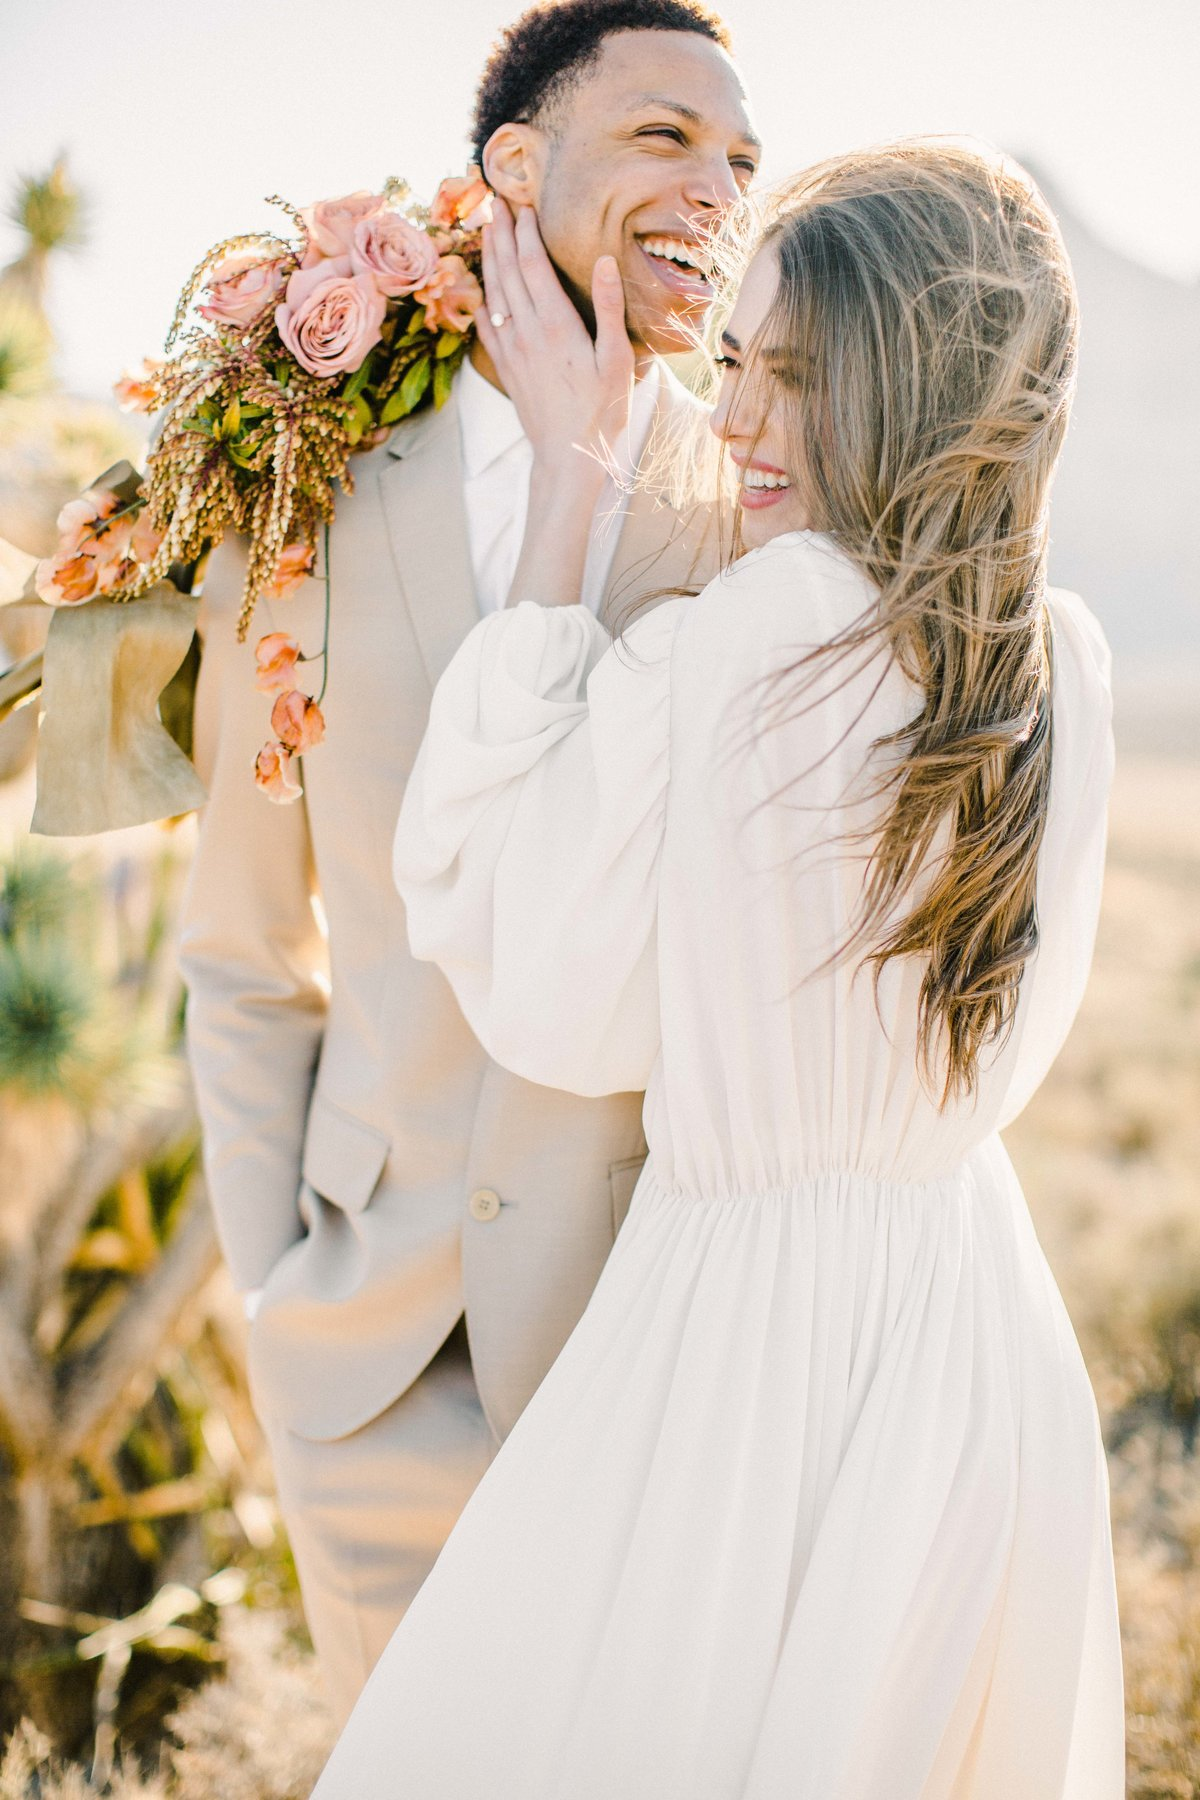 Babsie-Ly-Photography-Destination-Wedding-Photographer-Romantic-Elopement-San-Diego-001